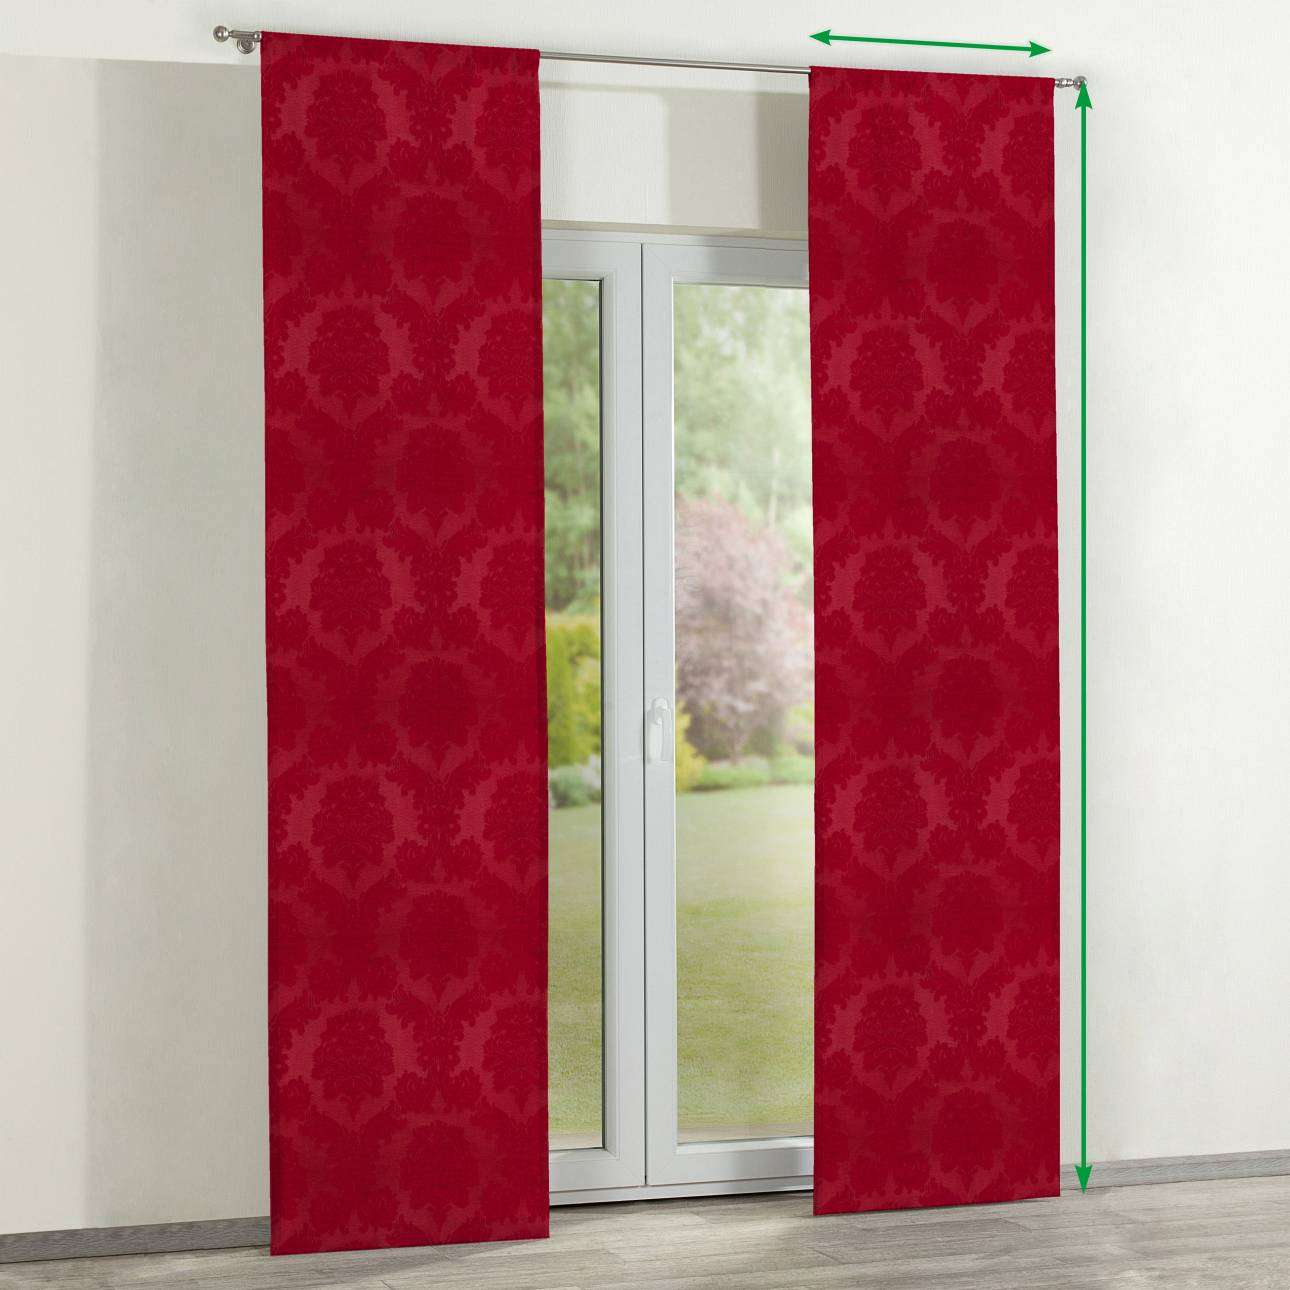 Slot panel curtains – Set of 2 in collection Damasco, fabric: 613-13